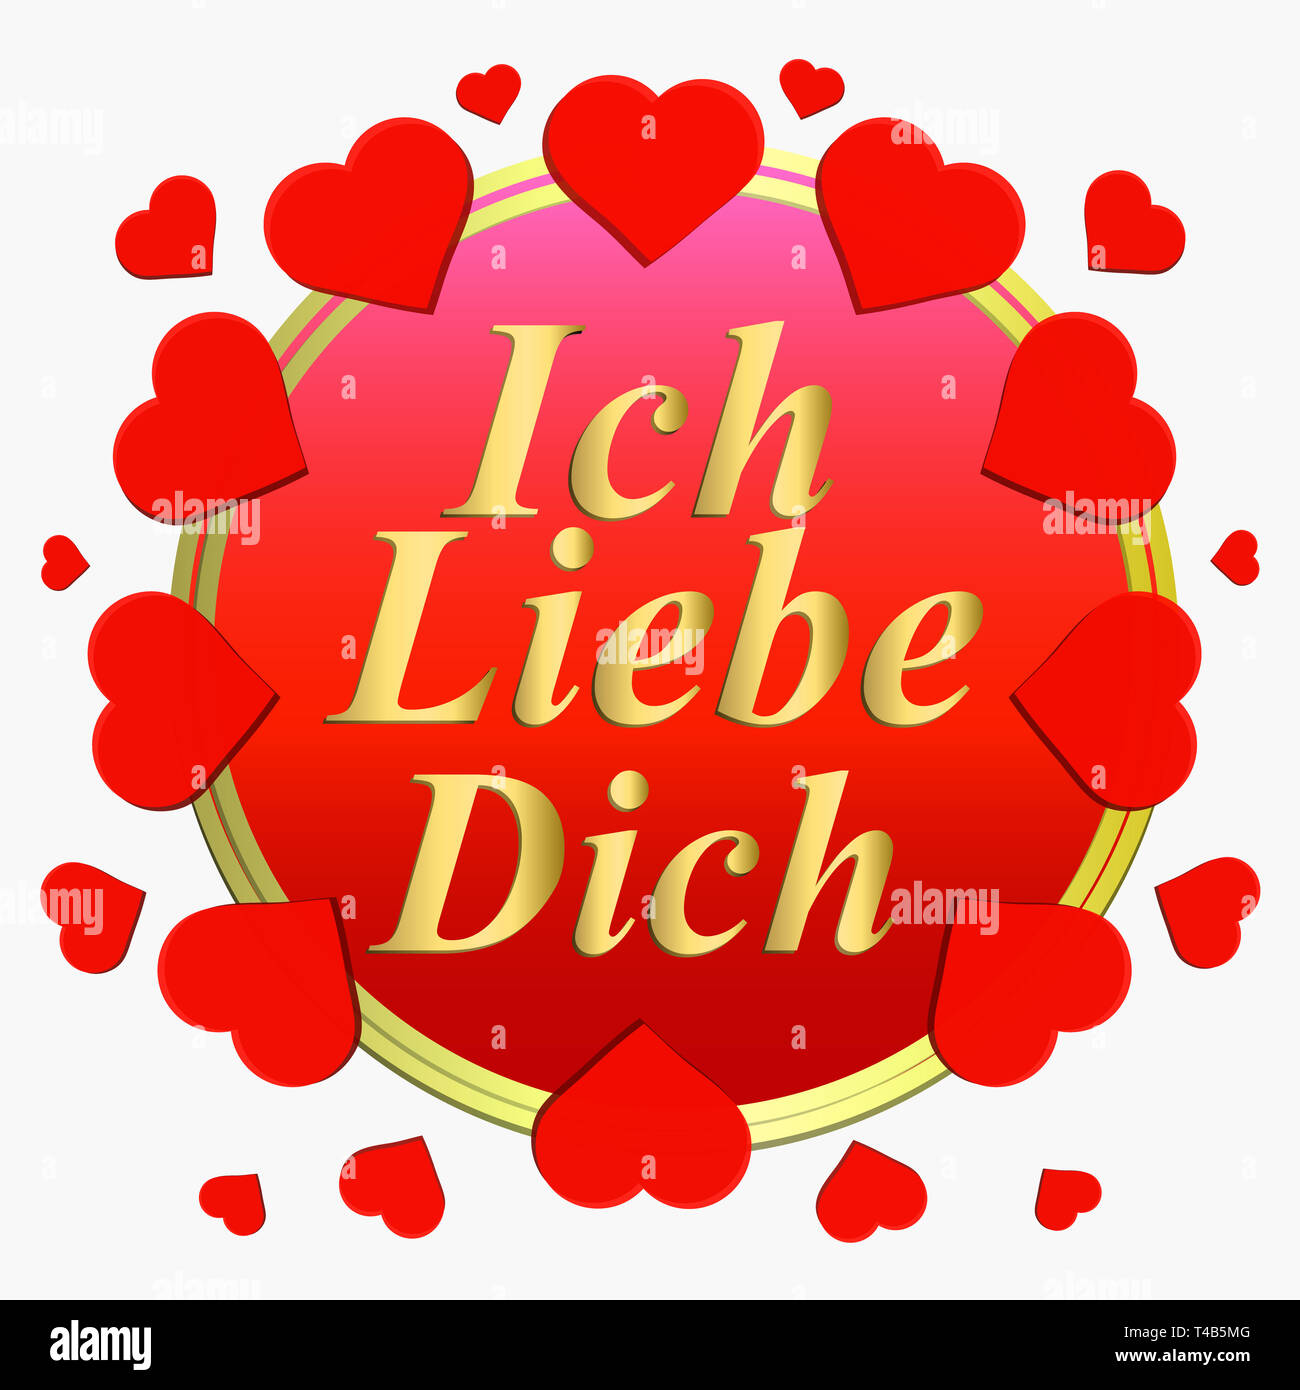 Love You Bilder I Love You. Background With Red Hearts. Card For Celebrations. Bright Backdrop With Hearts In German Language Stock Photo - Alamy